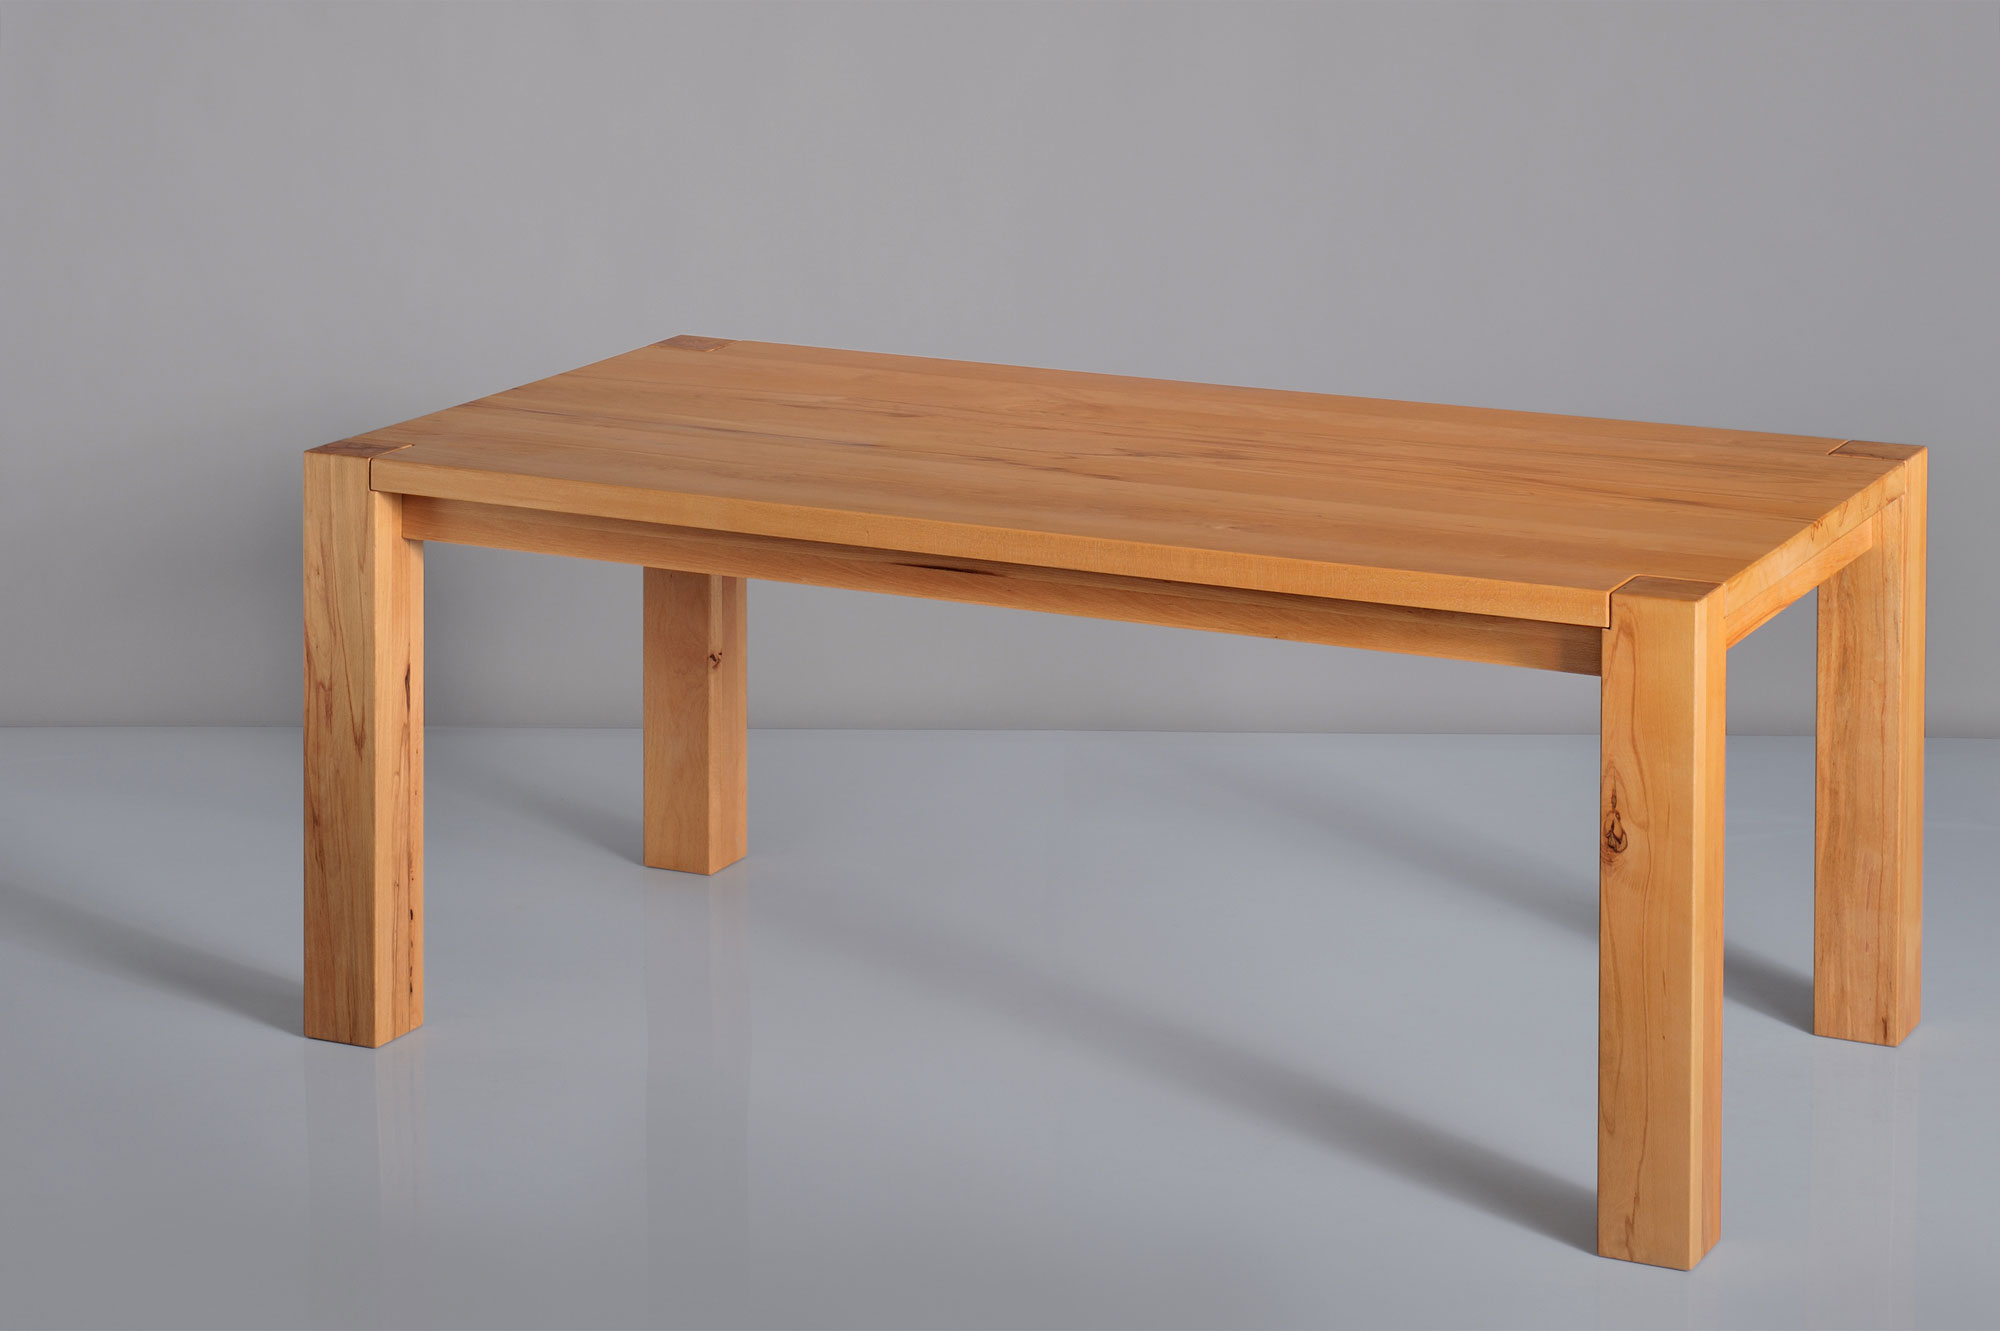 Rustic Oak Table TAURUS 4 B11X11 t4b11KBU1637 custom made in solid wood by vitamin design